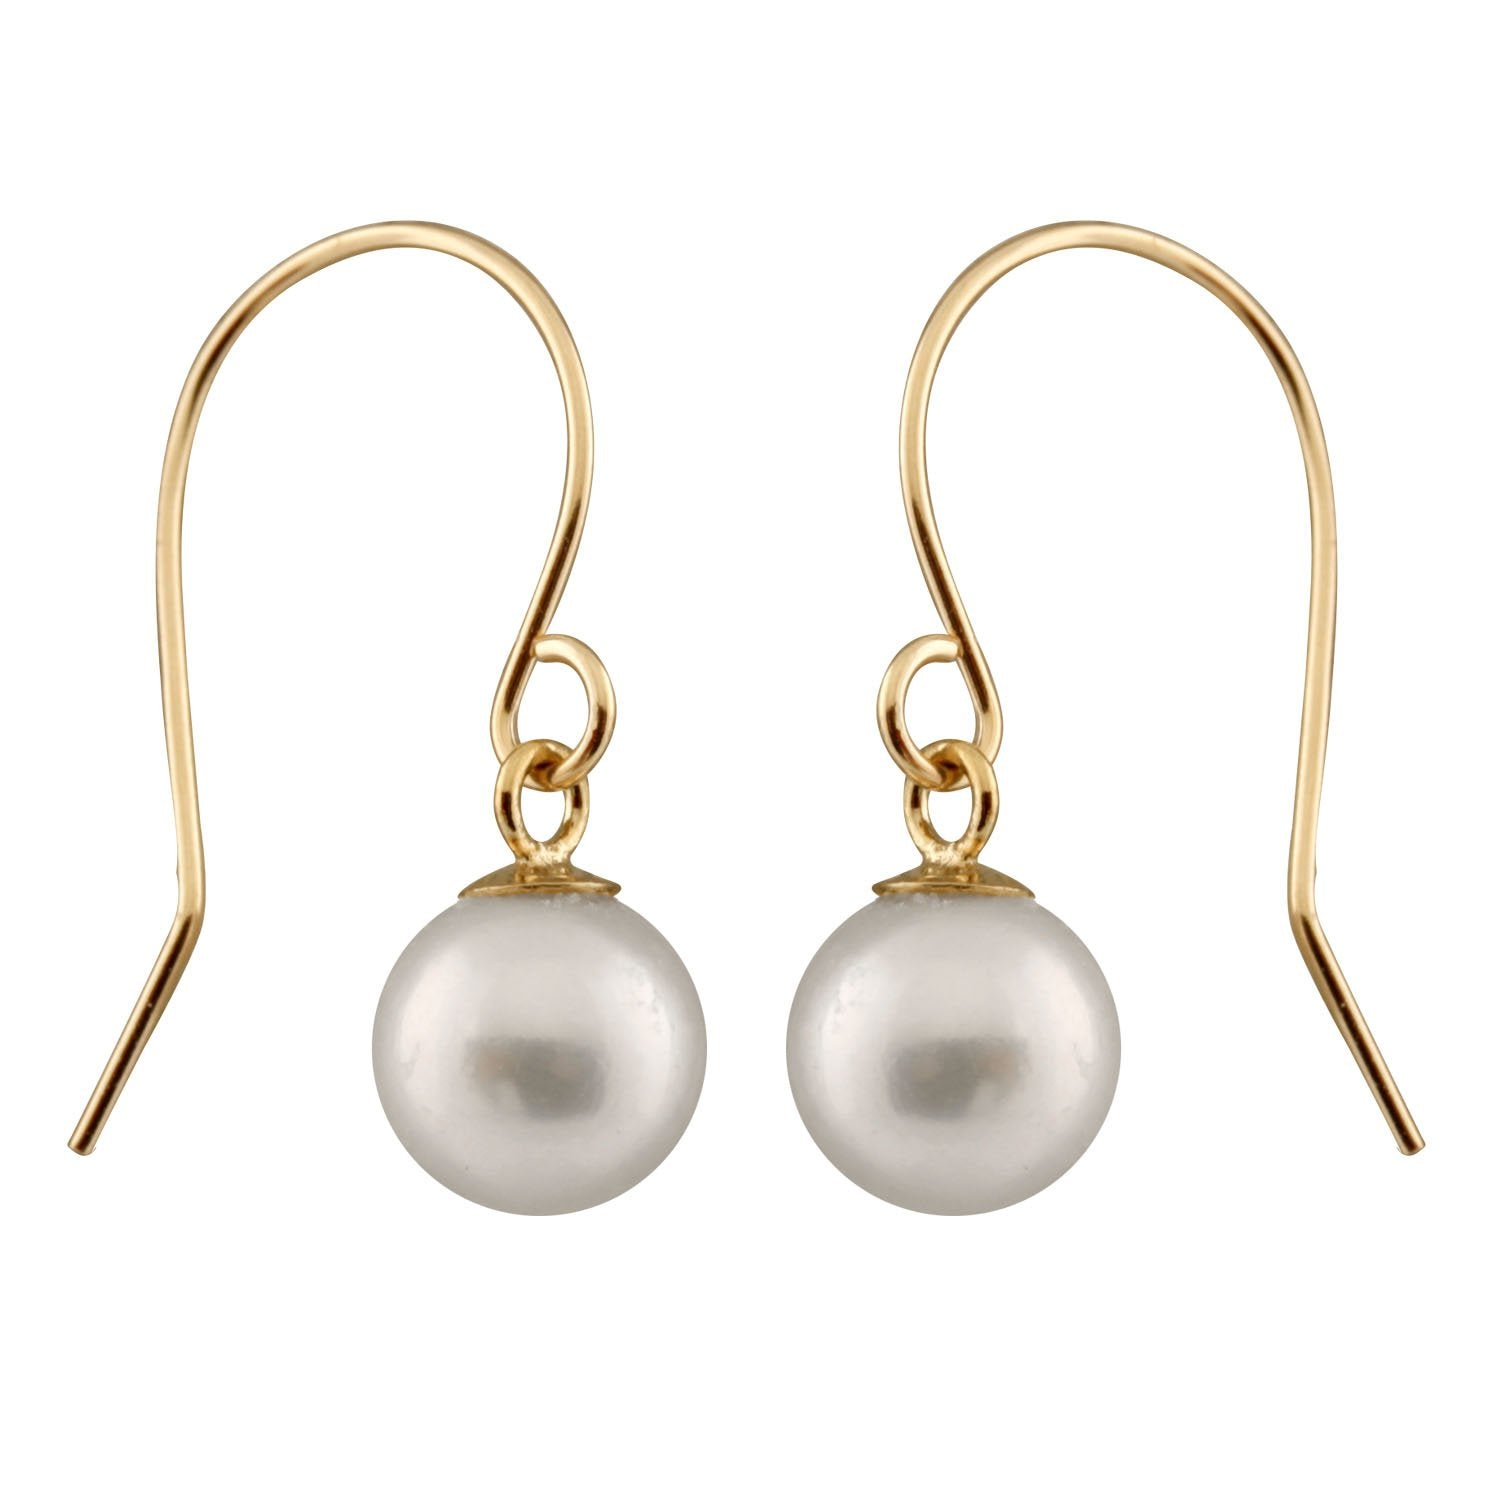 14k Gold Beautiful Hook Pearl Dangling Earrings